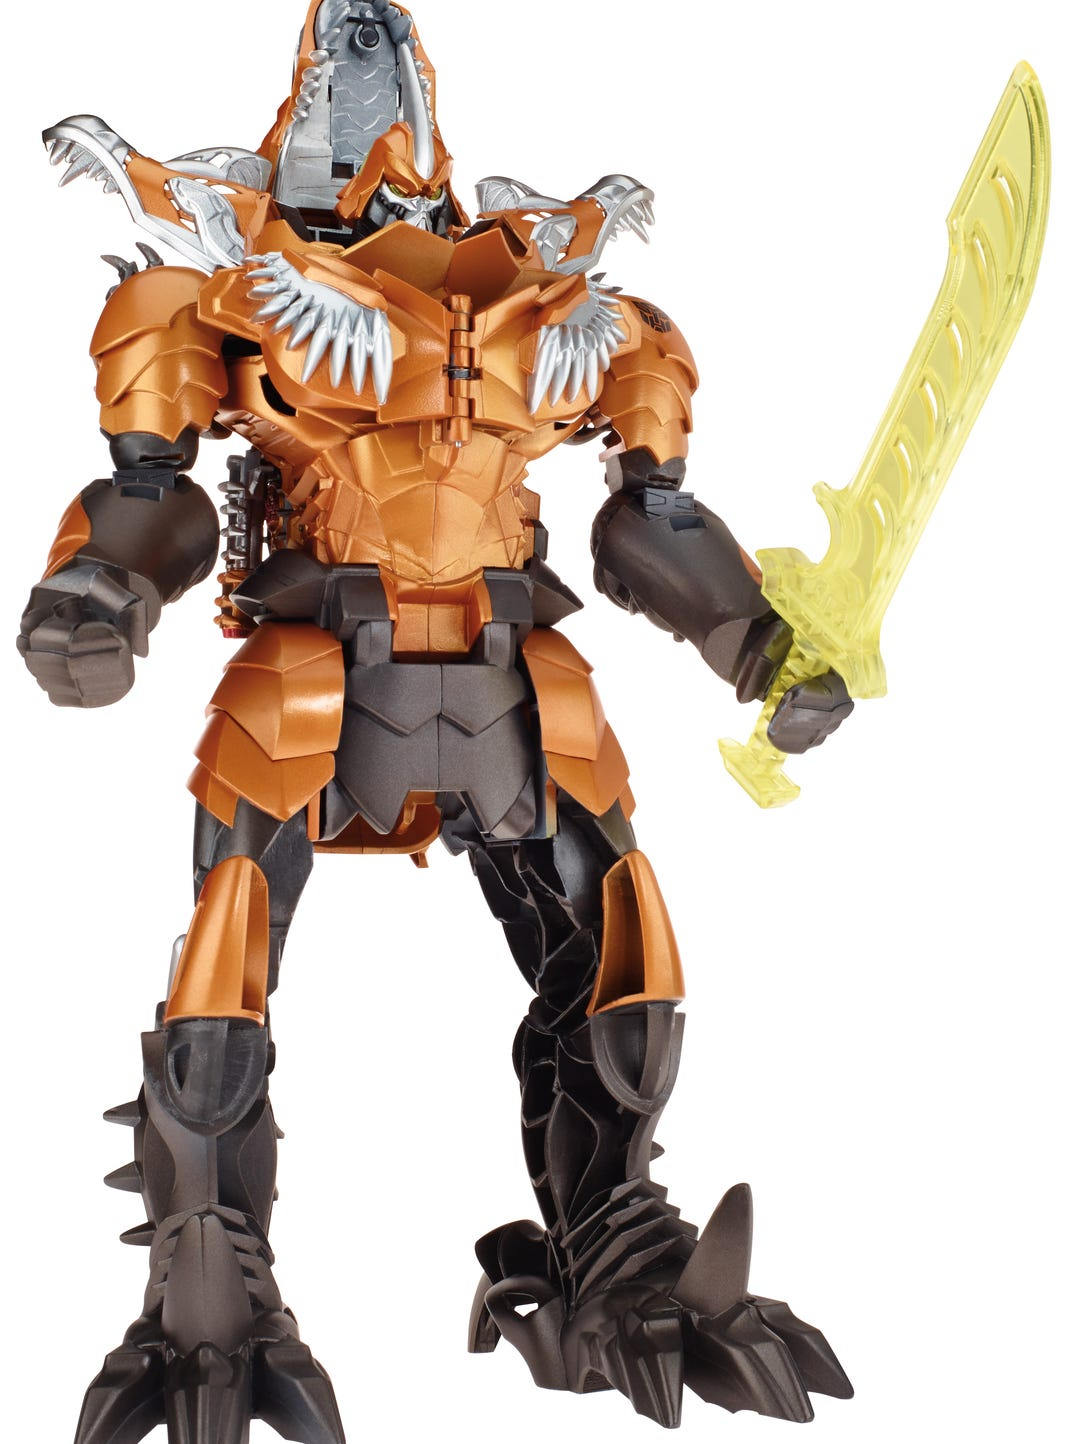 JOUETS - Transformers 4: Age Of Extinction - Page 6 1392407228009-A6145-GRIMLOCK-with-Sword